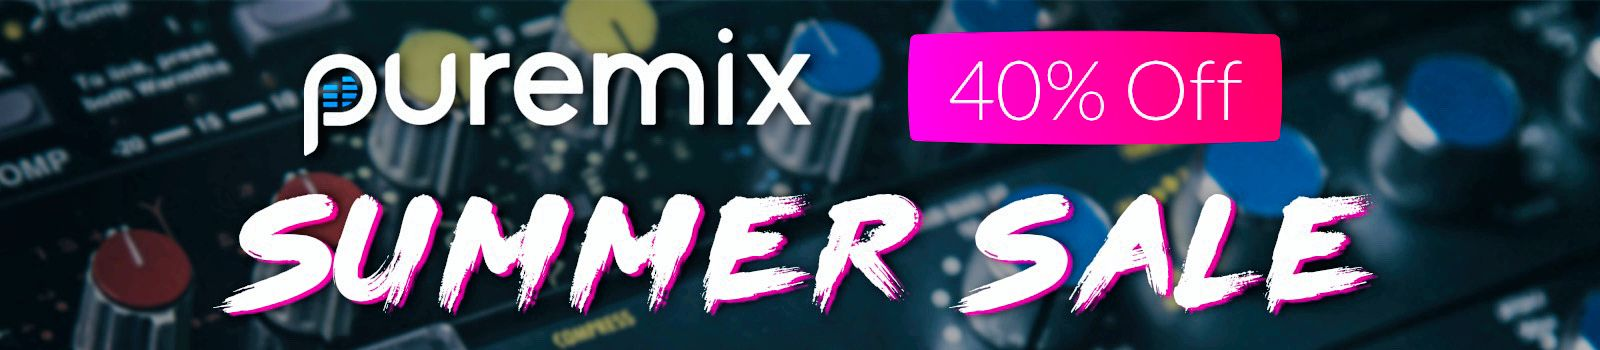 pureMix Summer Sale - Save 40% on Pro Memberships and get everything pureMix has to offer!